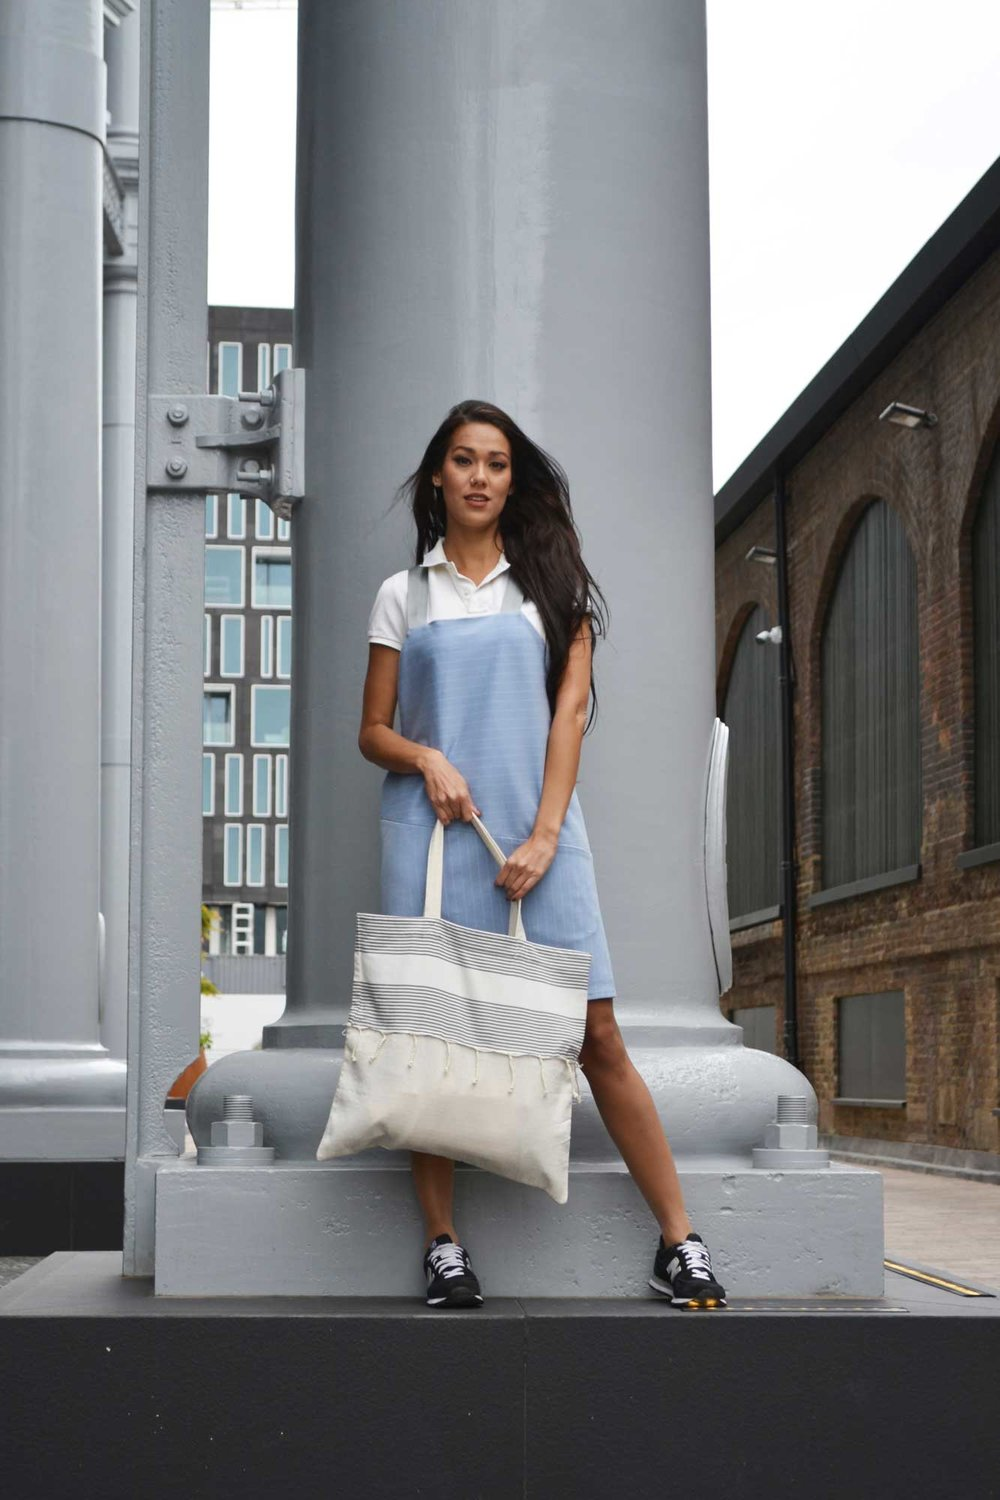 Bruna Costa models the  Beach Bag in Grey Stripes , photographed by Ana Carneiro